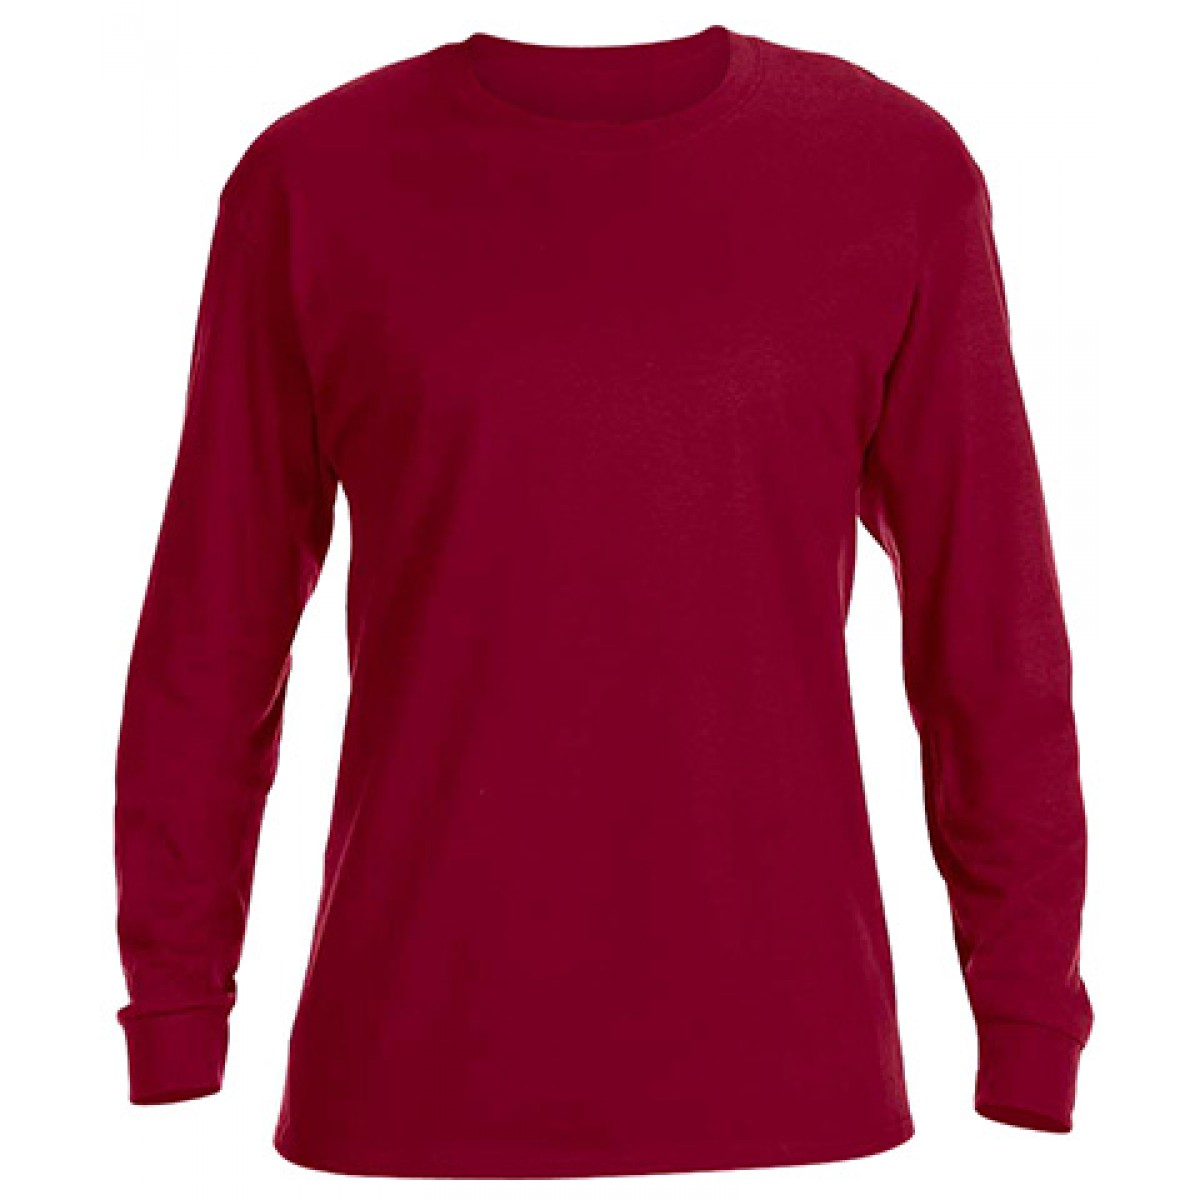 Heavy Cotton Long-Sleeve Adidas Shirt-Red-YL